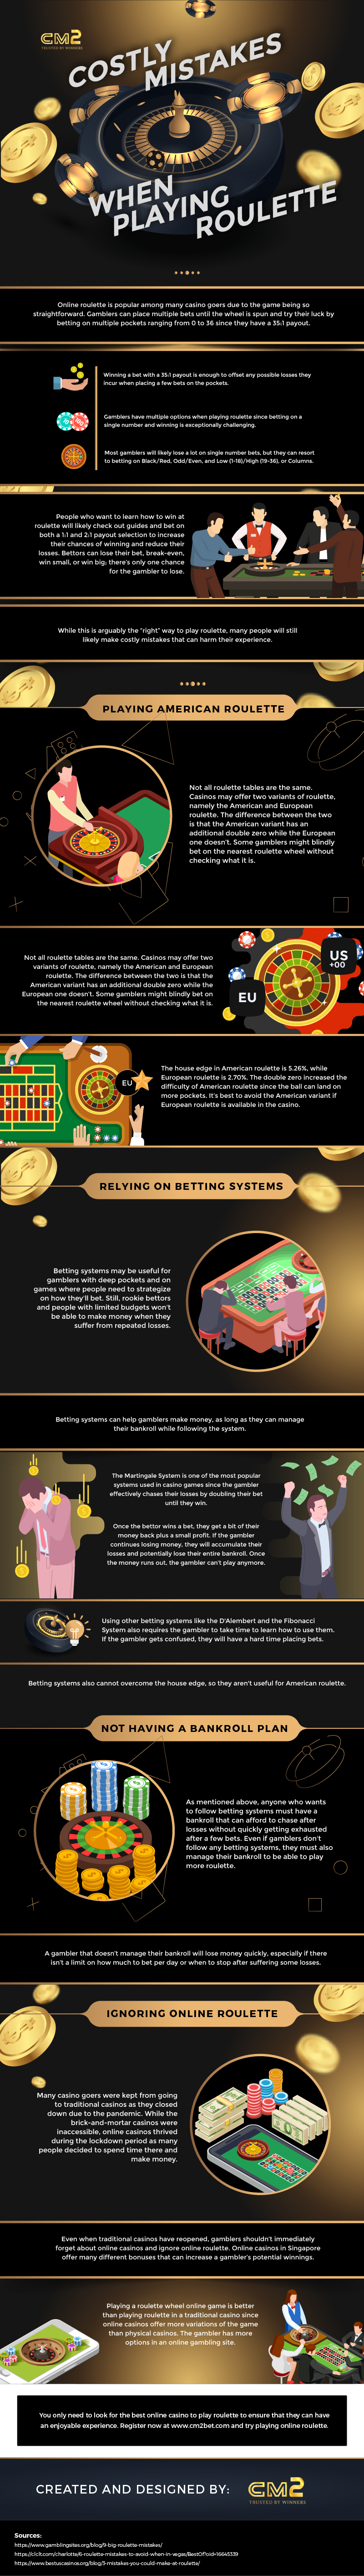 Costly Mistakes When Playing Roulette – Infographic